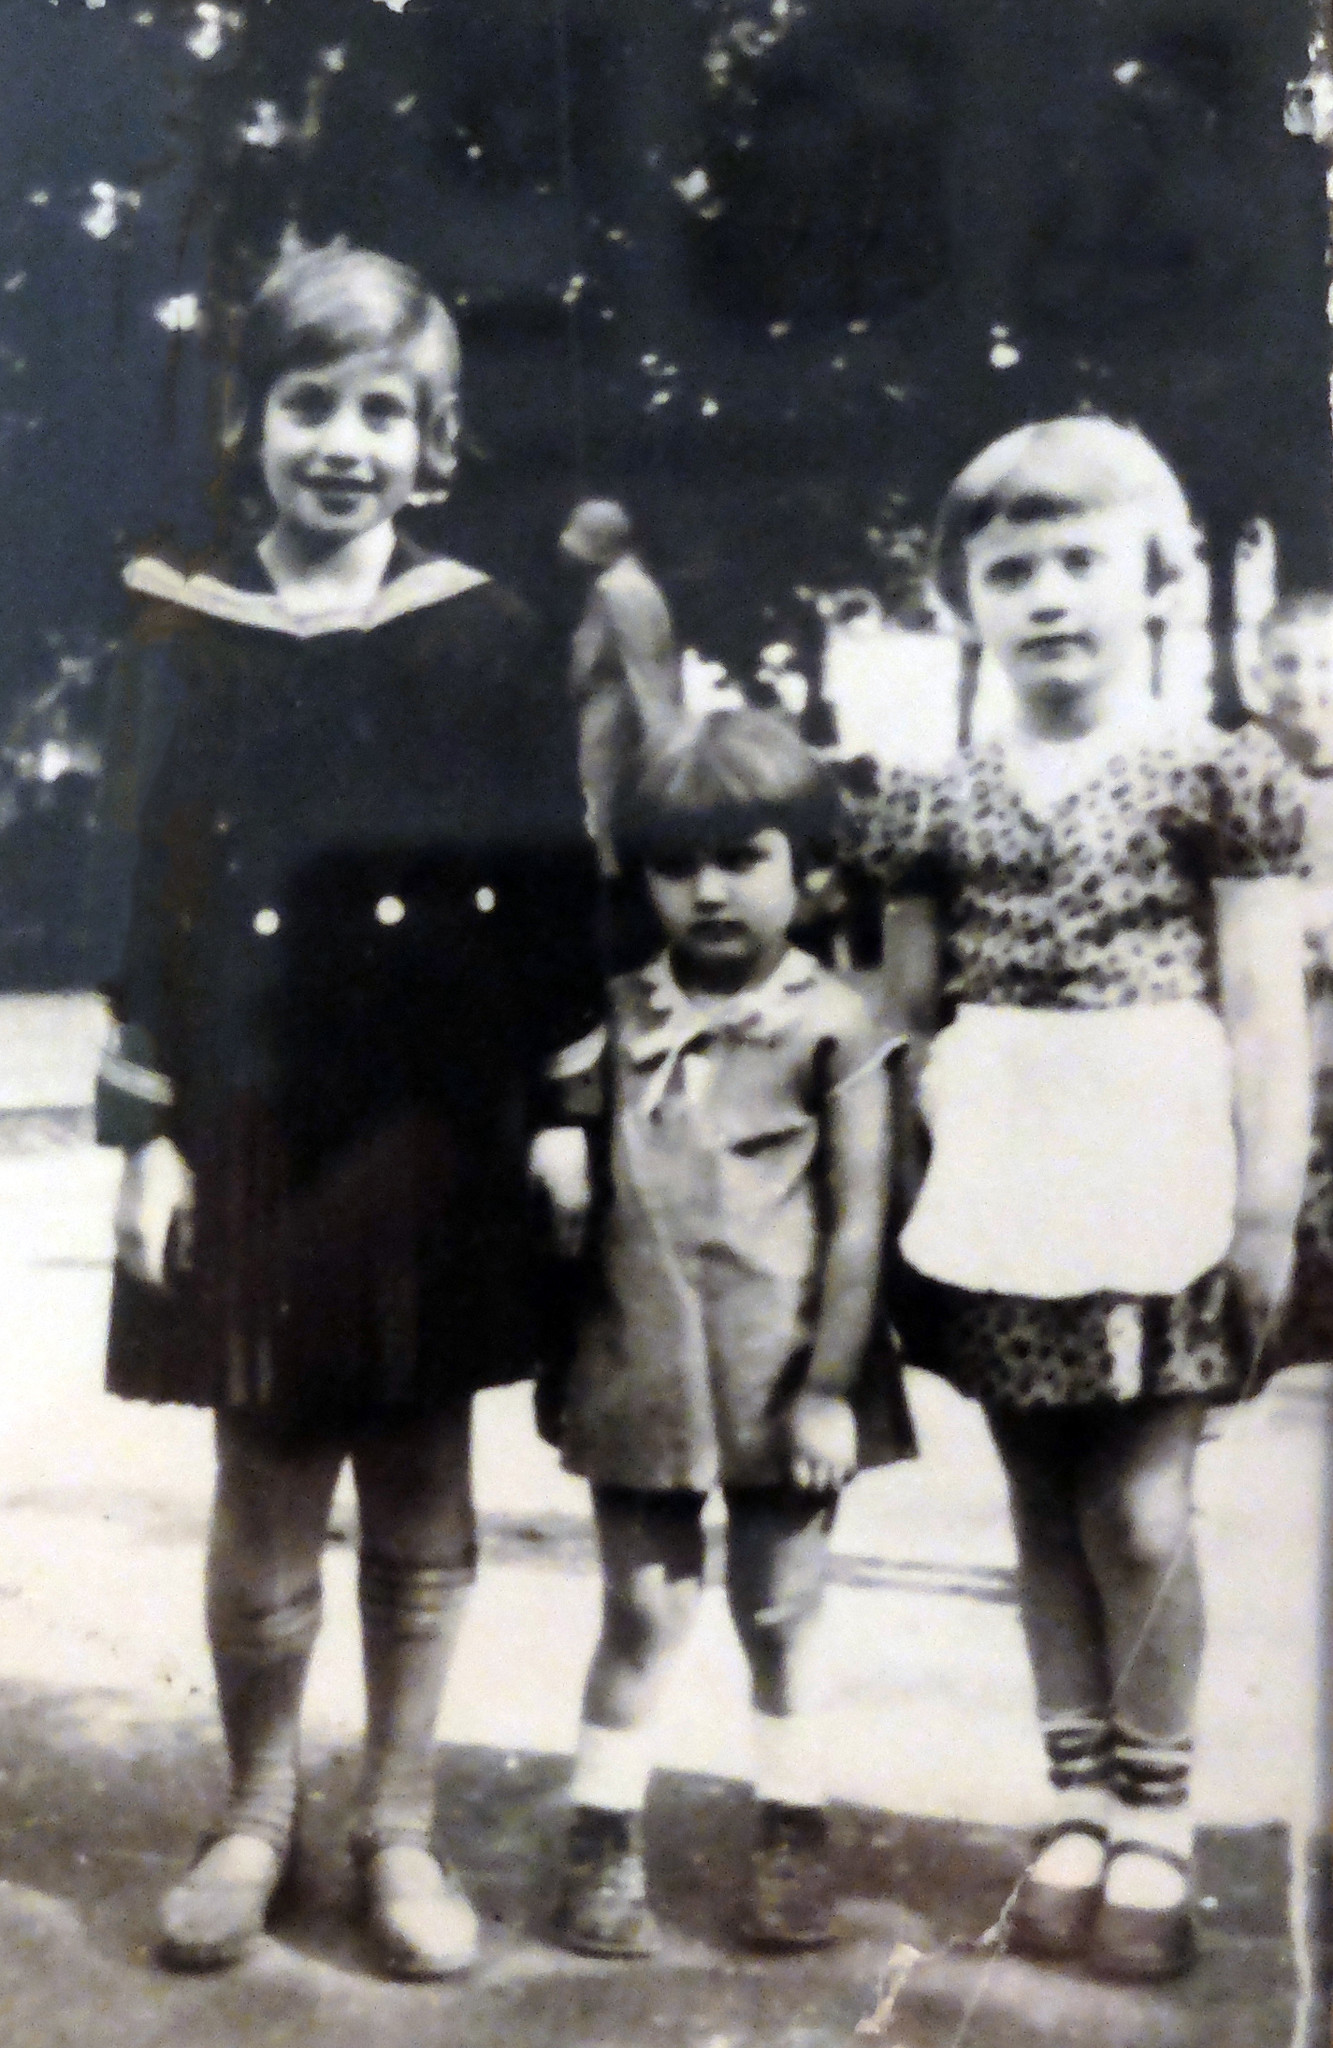 Sisters Magda, Edith and Clara pose on some long-forgotten vacation in the early 1930s.